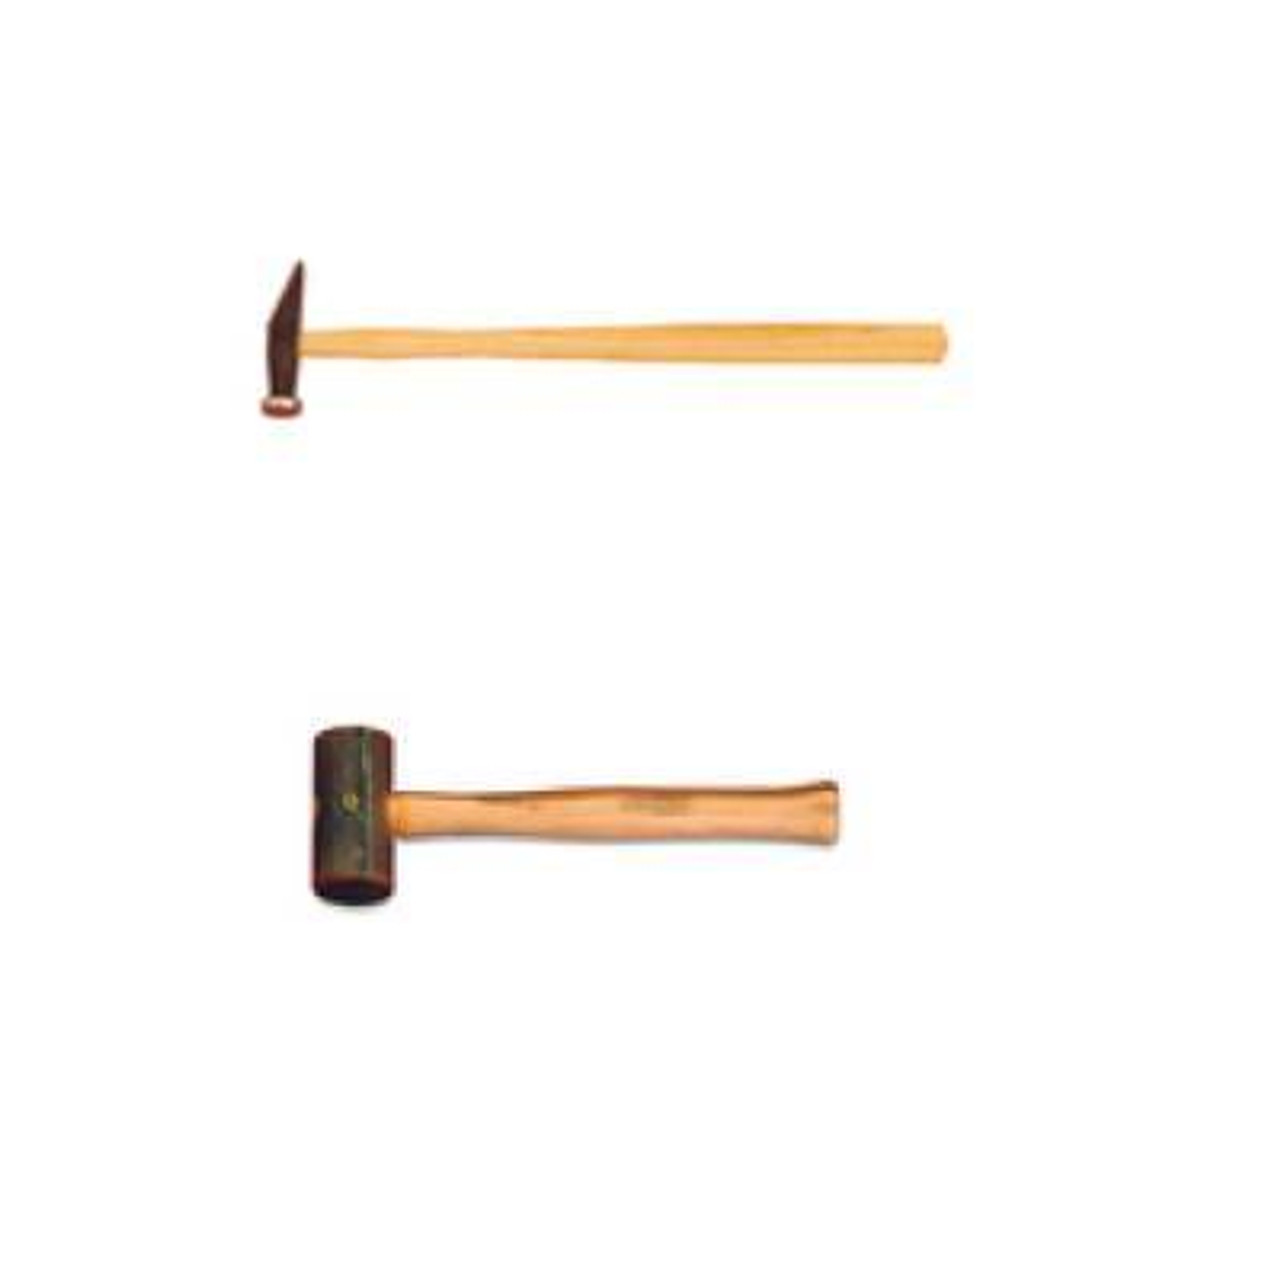 Hammers/ Mallets